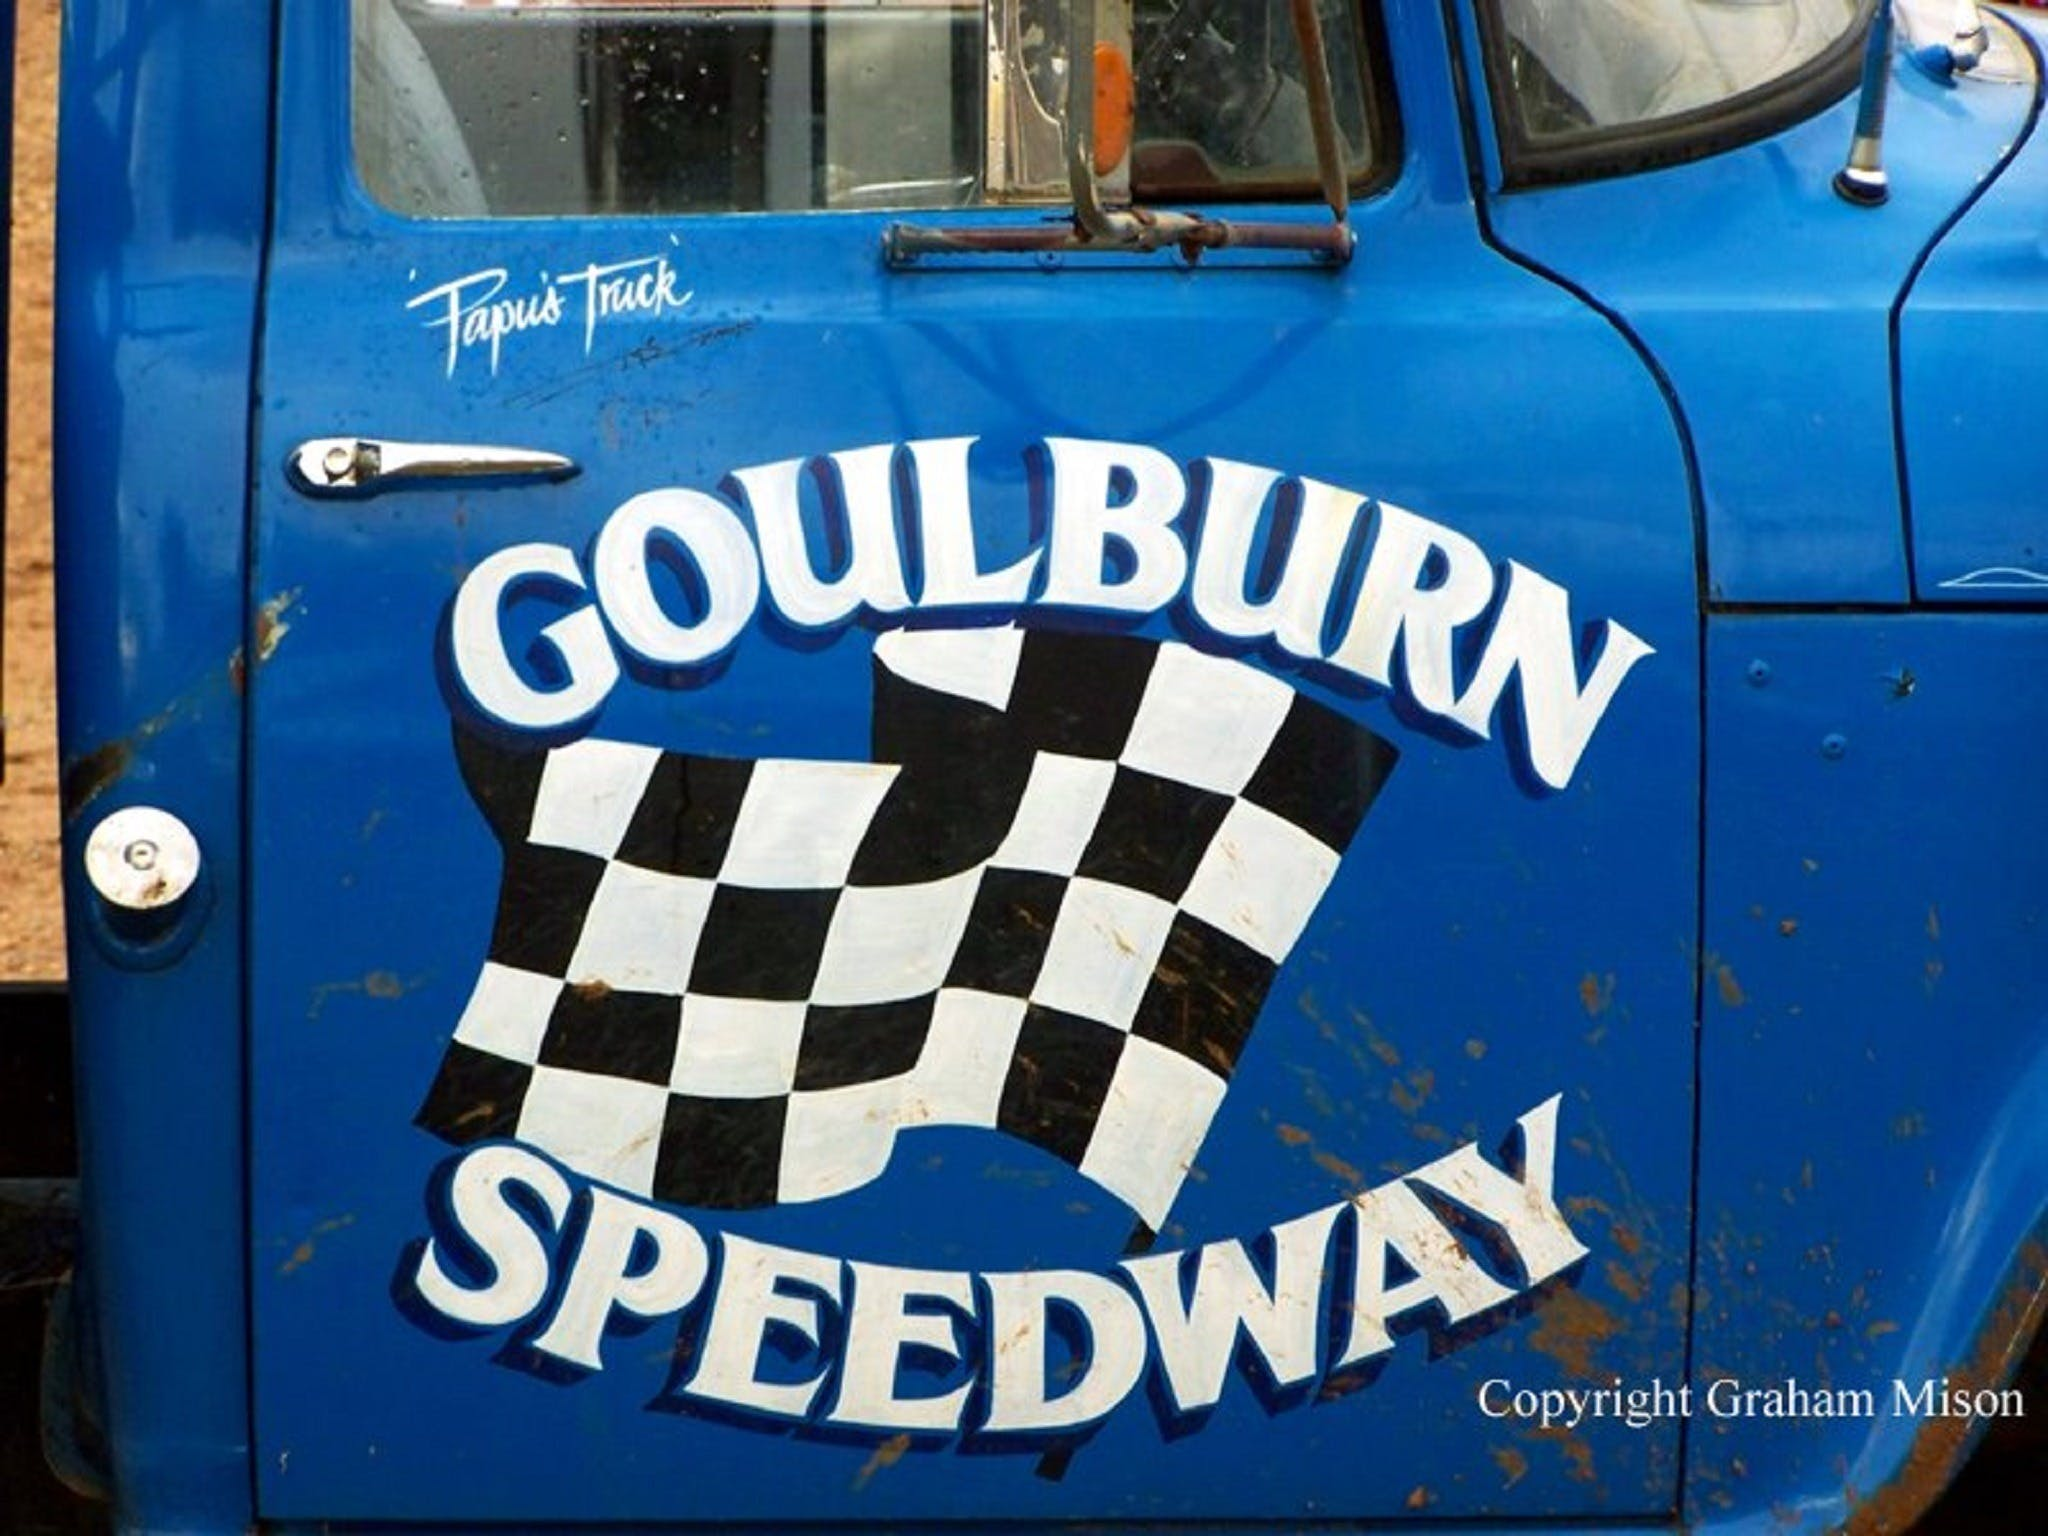 50 years of racing at Goulburn Speedway - Accommodation Sunshine Coast